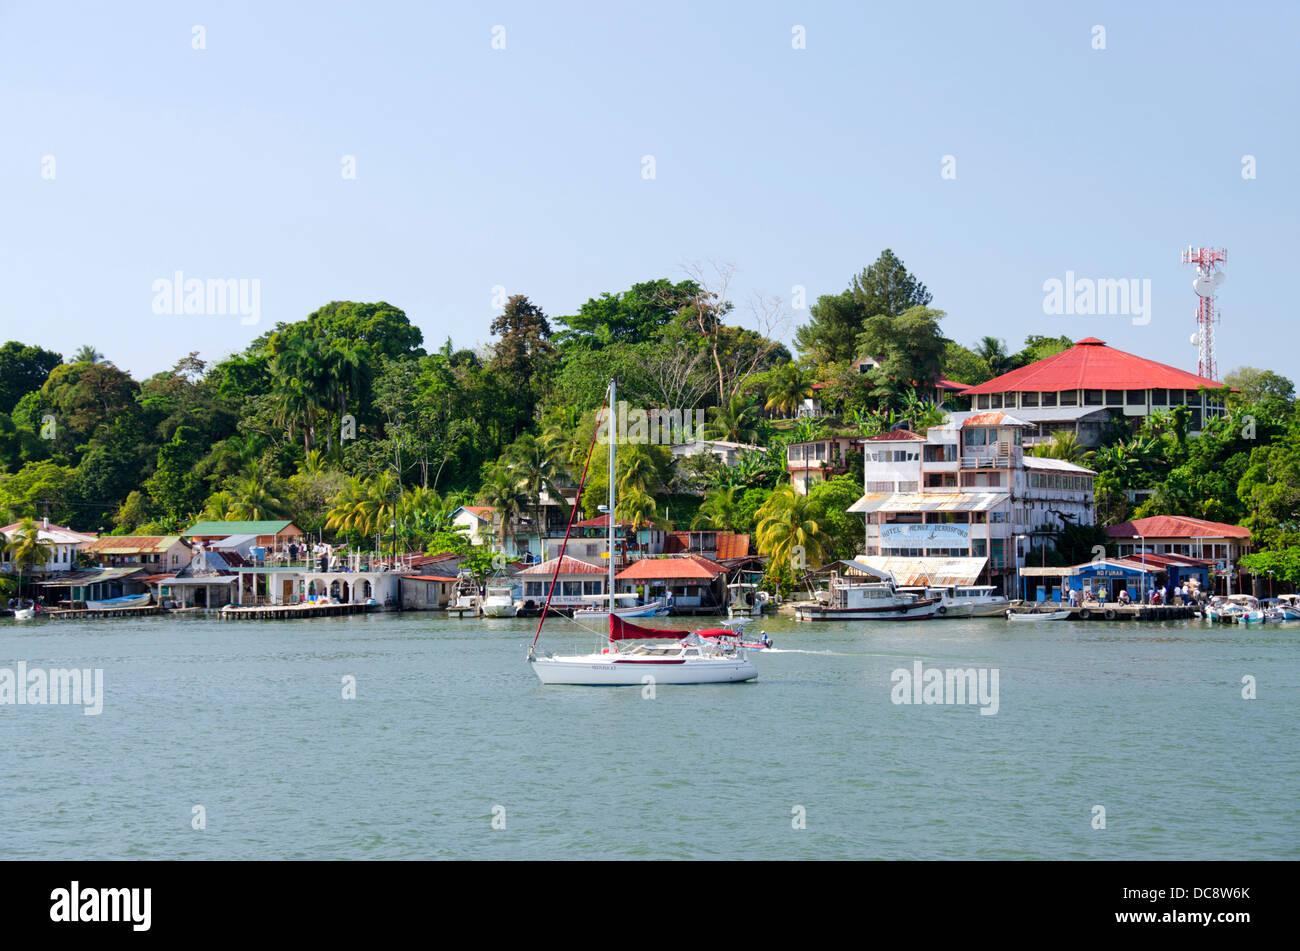 Guatemala, Livingston. Coastal view of the small port city of Livingston at the mouth of the Rio Dulce river. - Stock Image